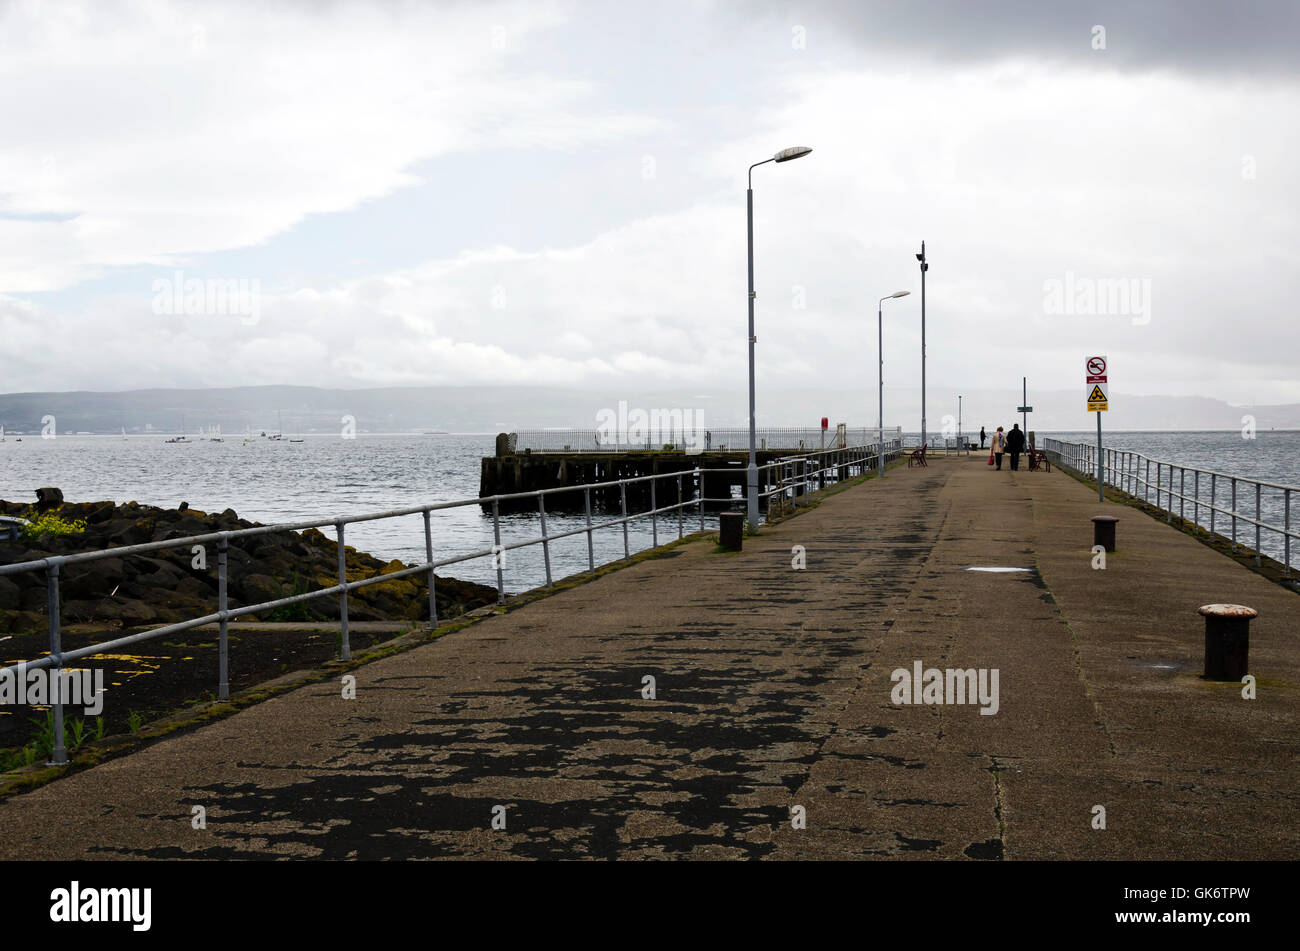 The pier at Helensburgh with Gare Loch beyond in Argyll and Bute Region, Scotland. - Stock Image